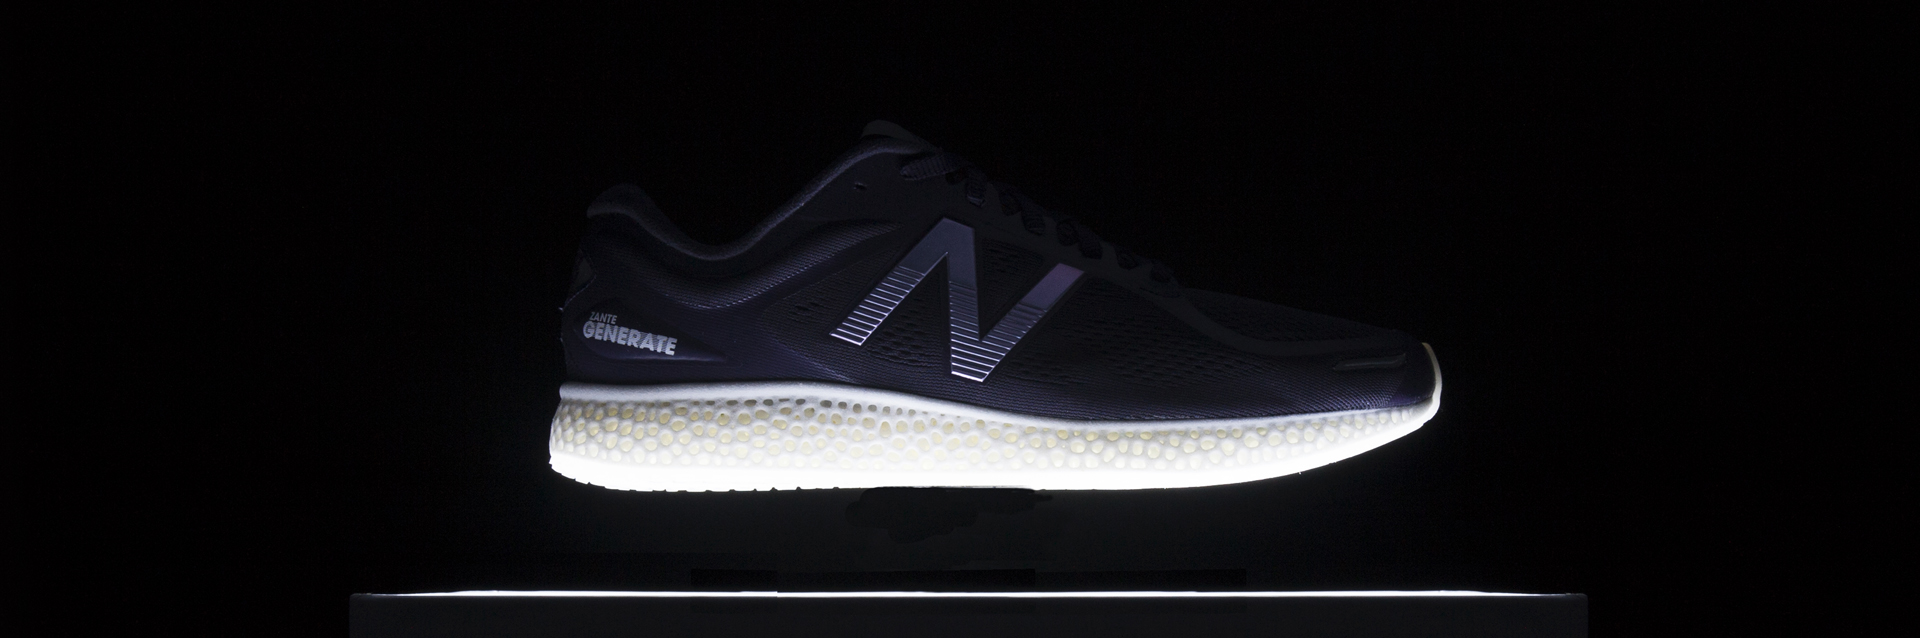 New Balance's Zante Generate is reportedly the world's first sneaker with a 3D printed midsole pipping both adidas and Reebok to the post. Photo via New Balance